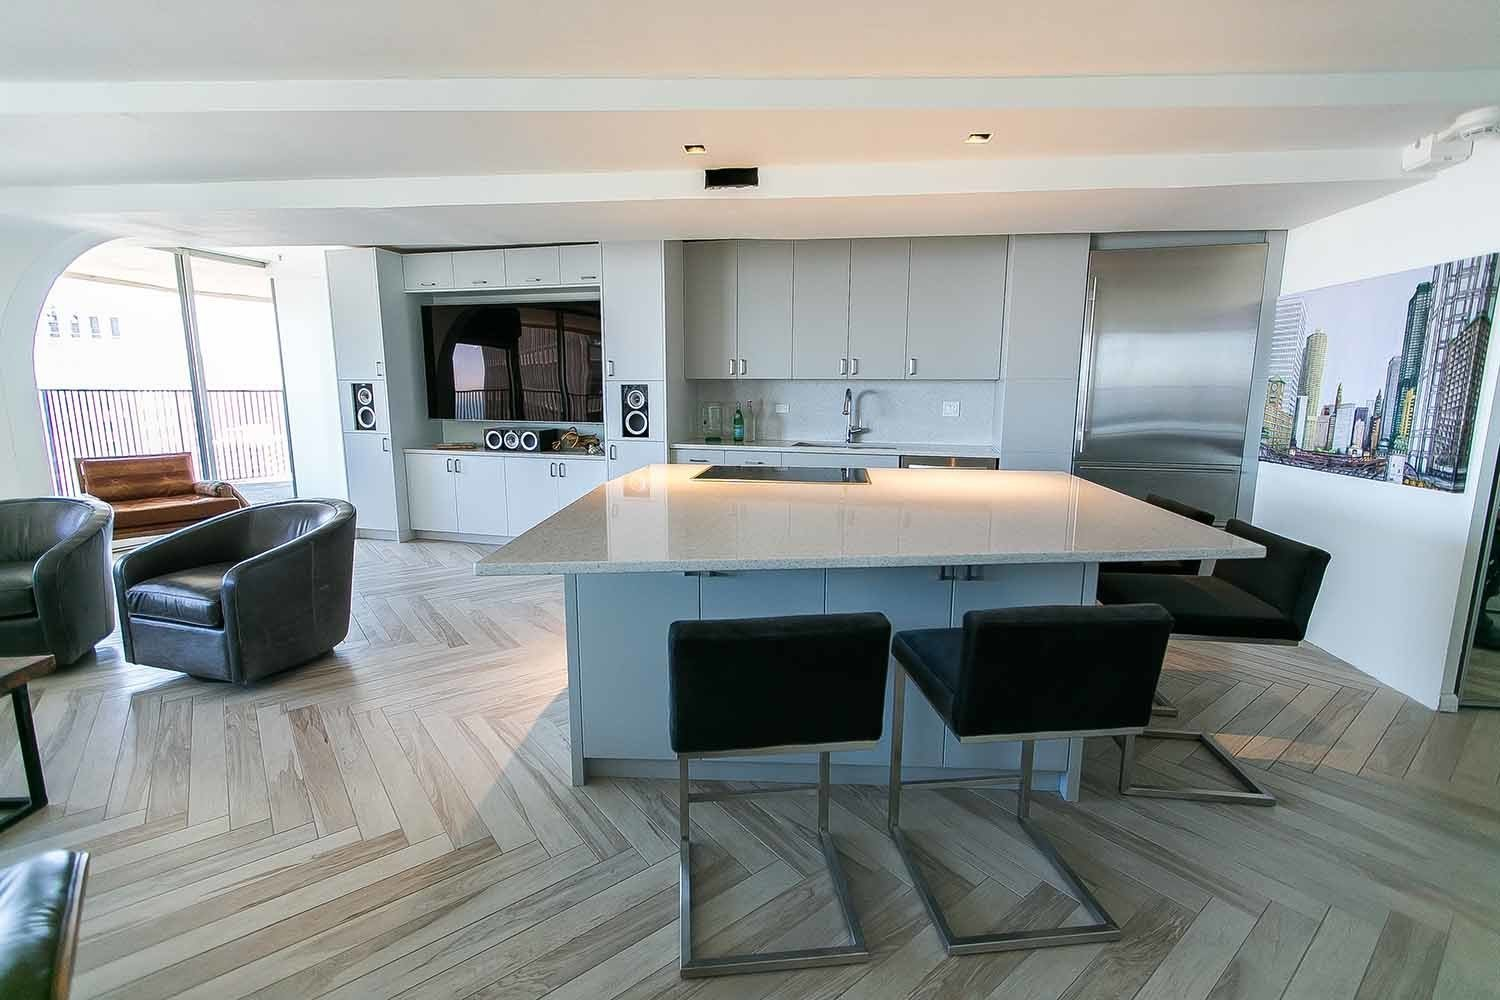 The all-new eat-in kitchen has an island with a Silestone quartz surface, comfortably seating six. To free up even more living space, an entertainment center is integrated into the back wall, adjacent to a seating nook.